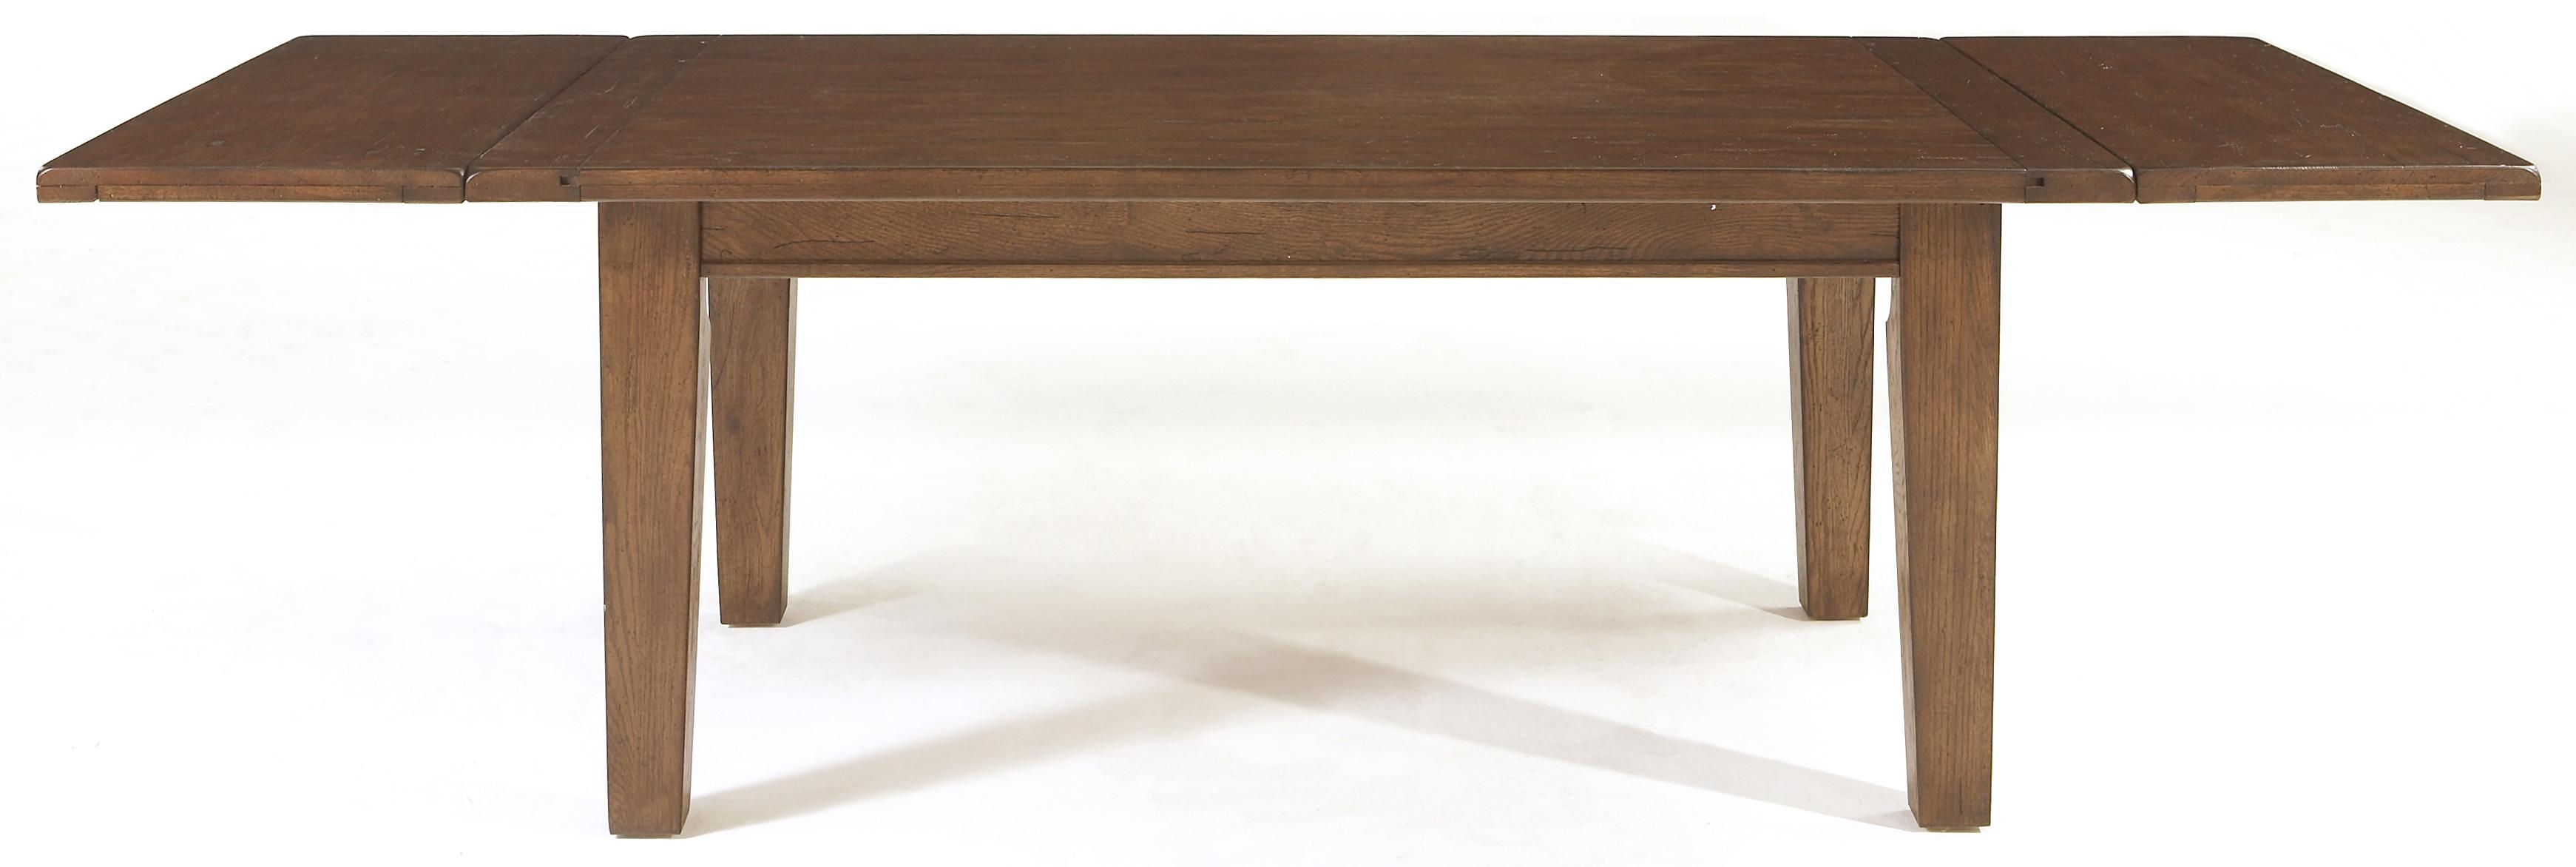 Leg Dining Table With Leaves by Broyhill Furniture | Wolf and ...